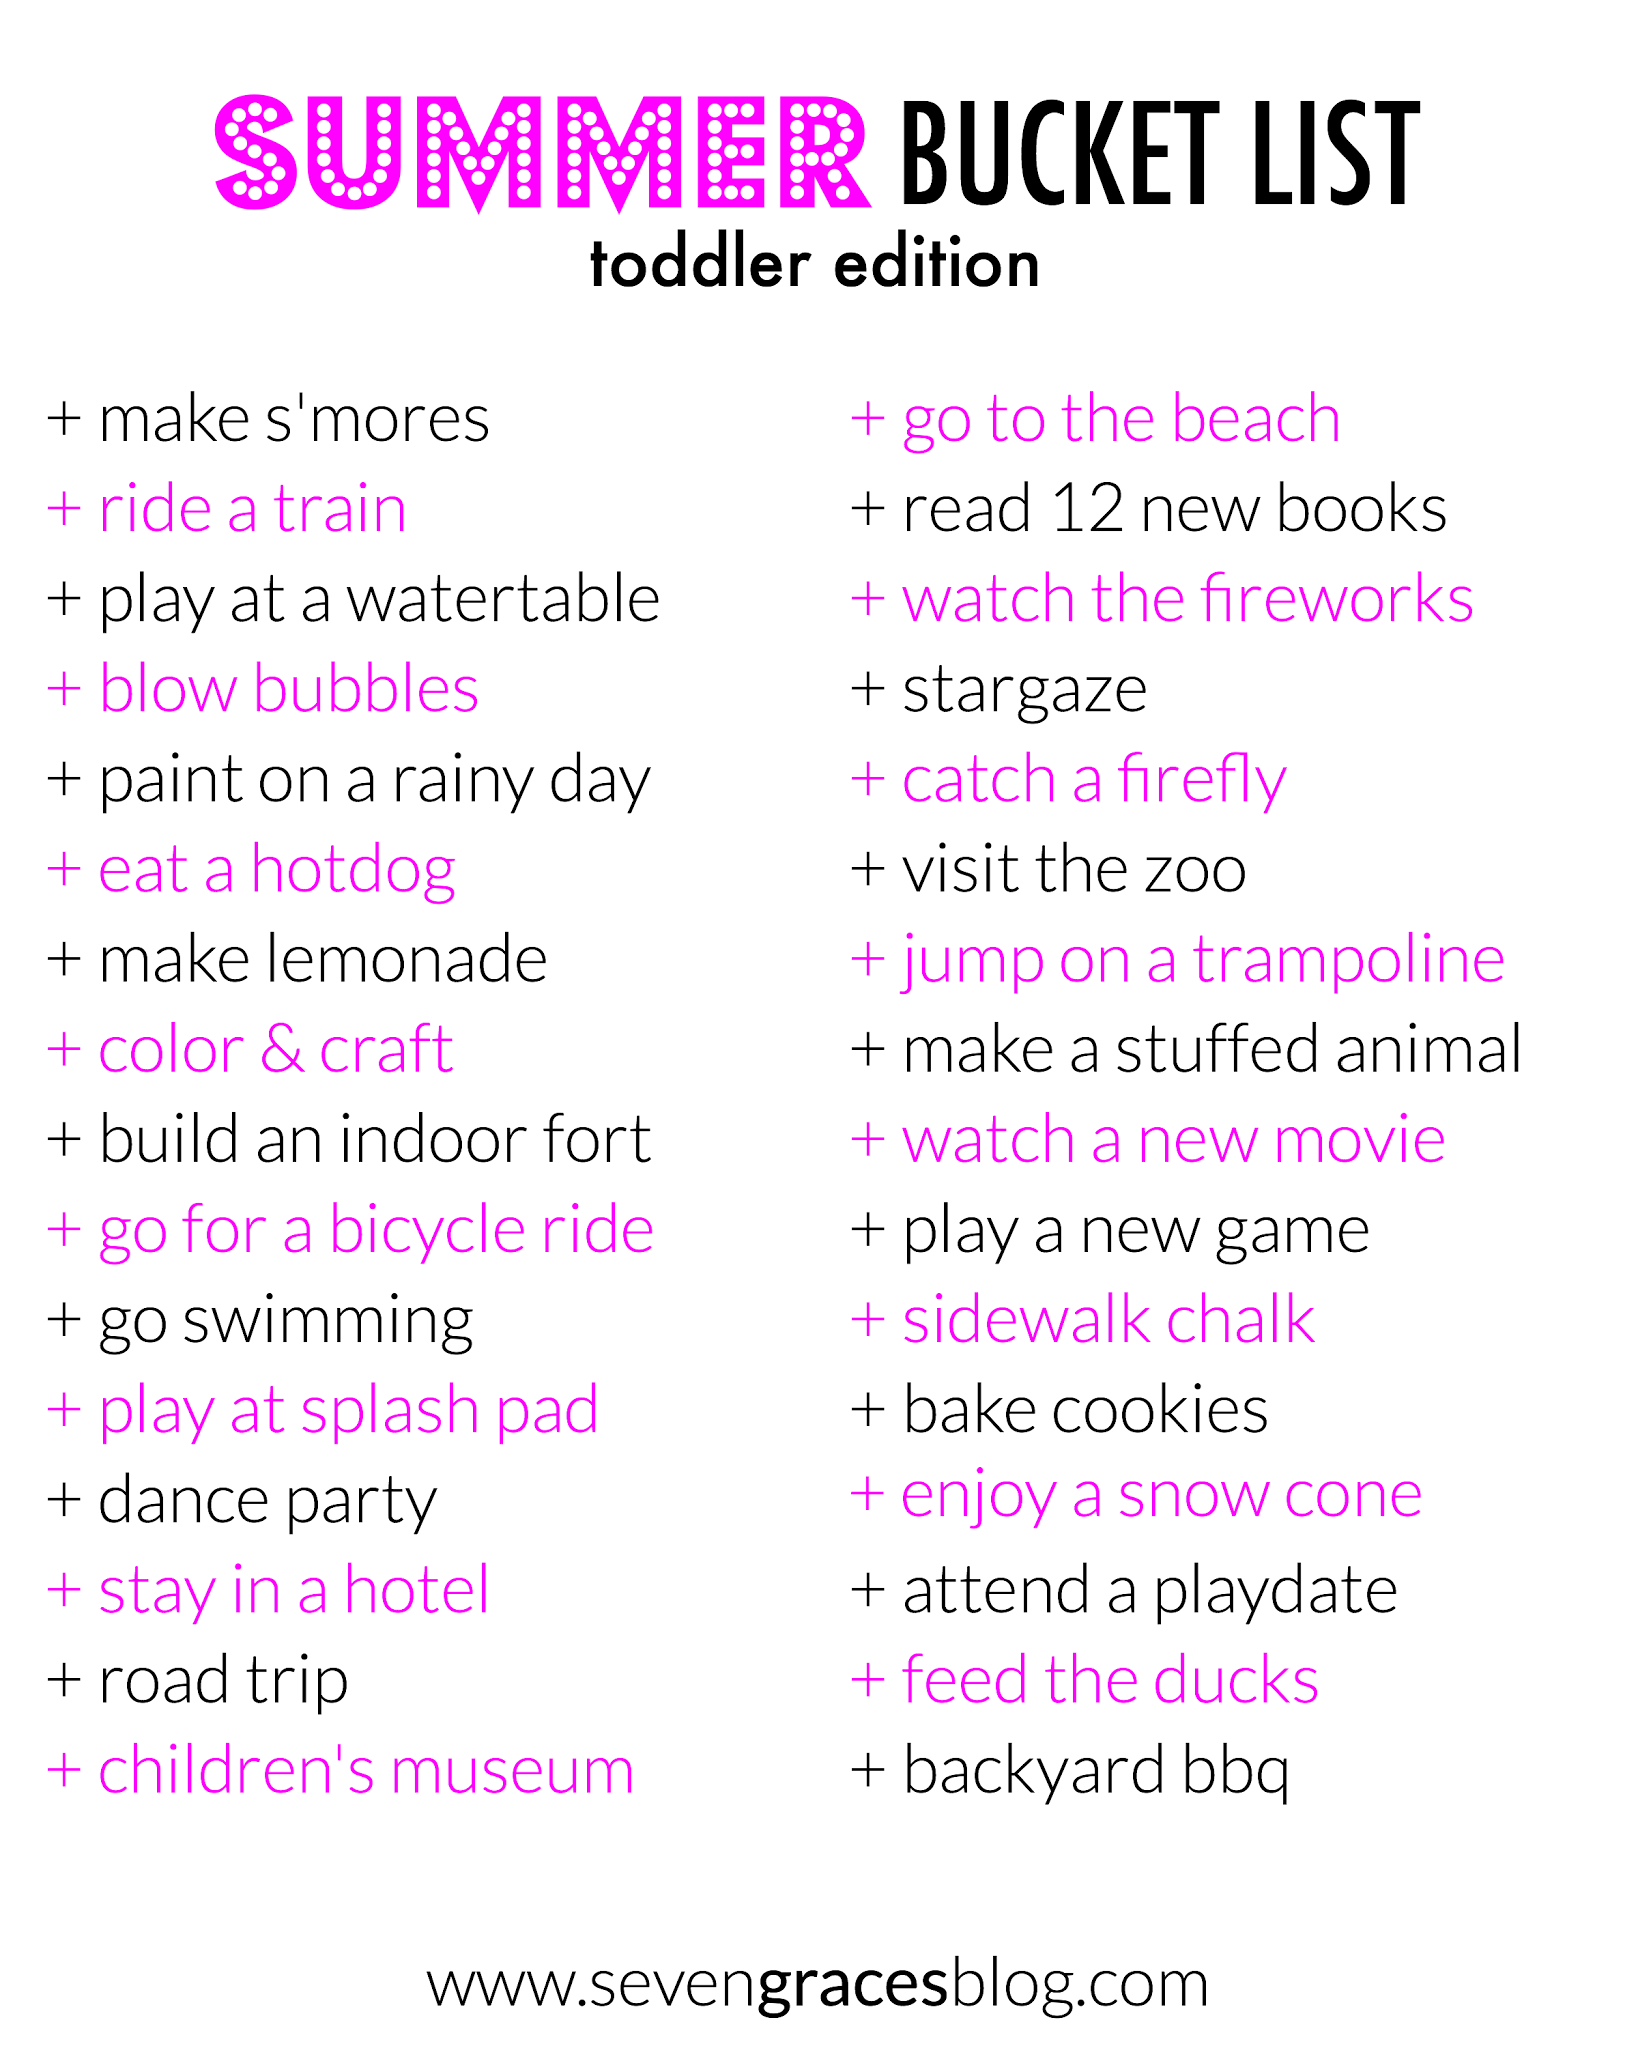 50 Summertime Activities & Boredom Busters! The ultimate Summer Bucket List for toddlers and preschoolers!